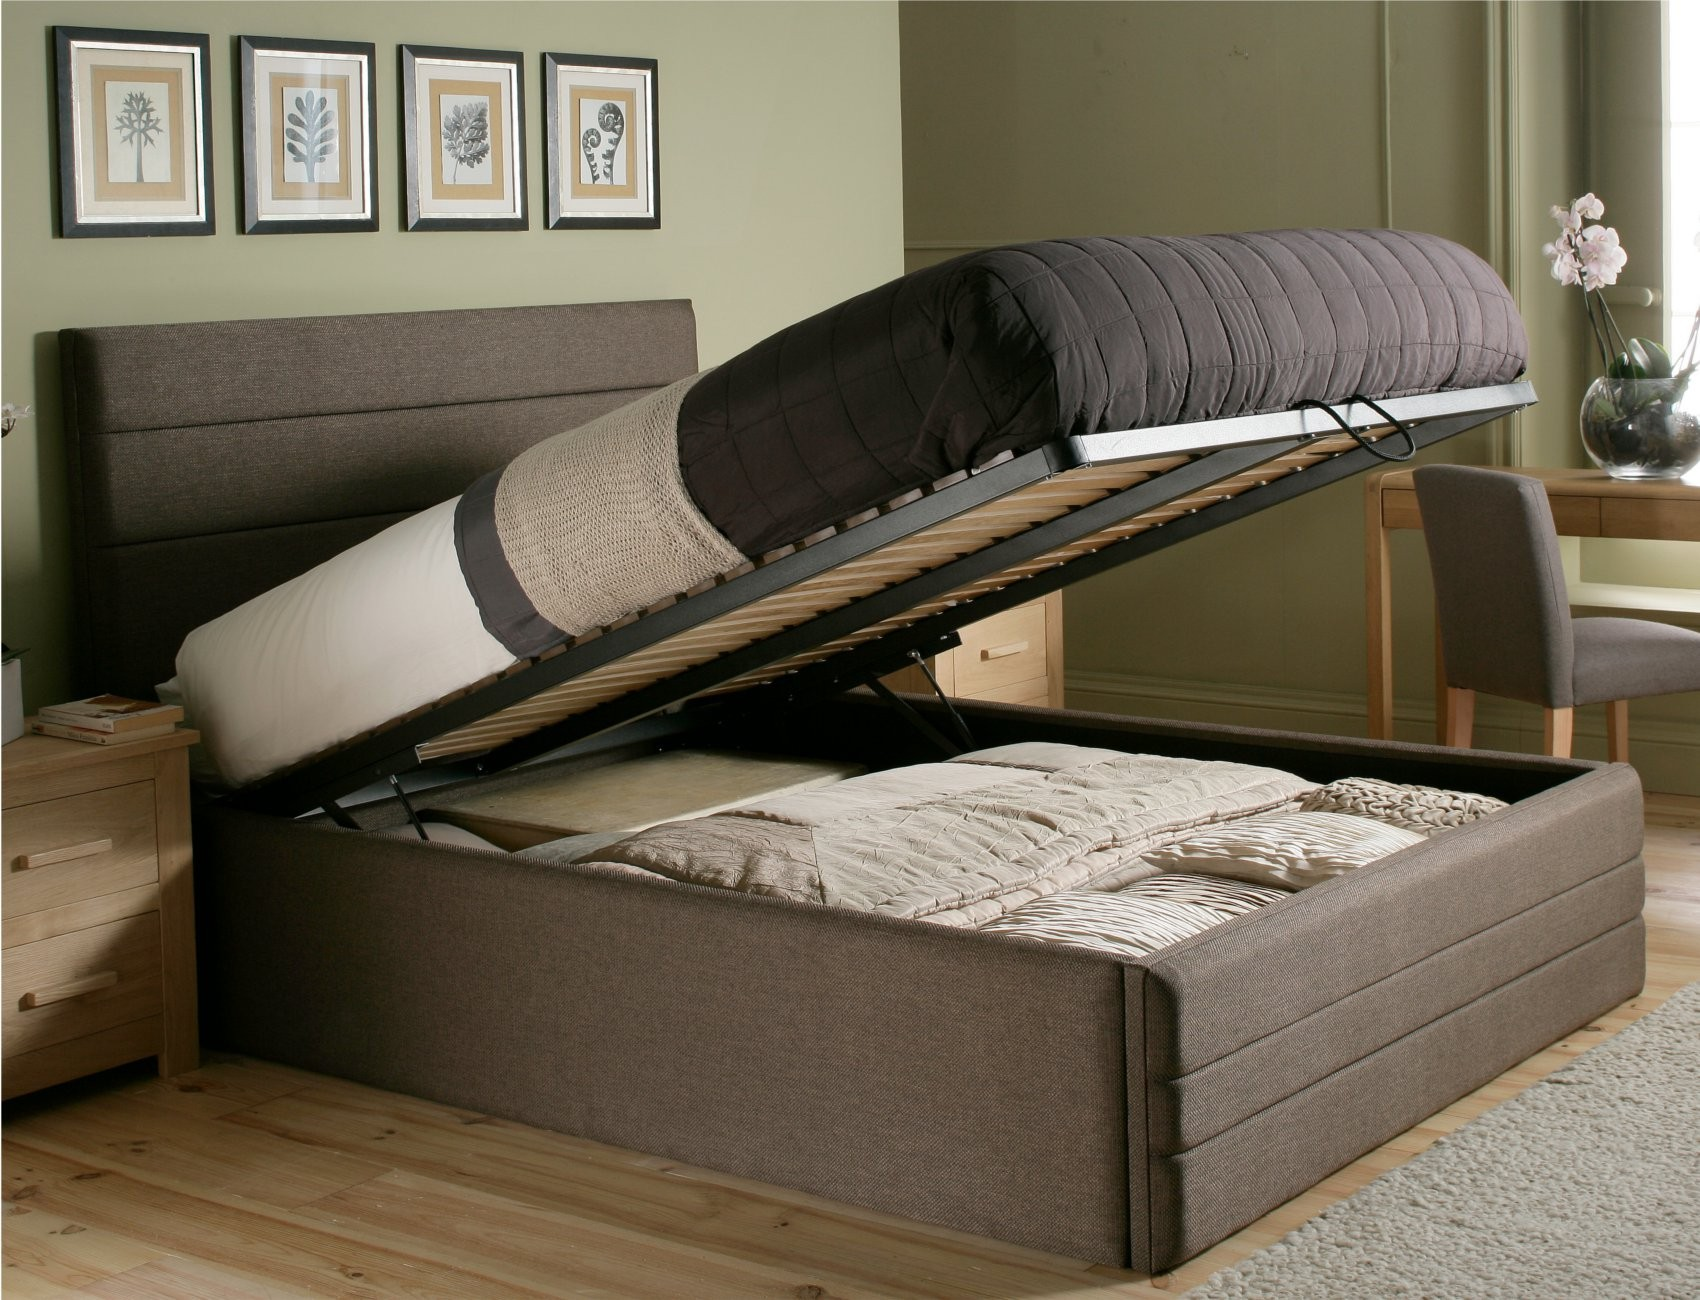 10 Different Types Of Beds For Your Home Happho